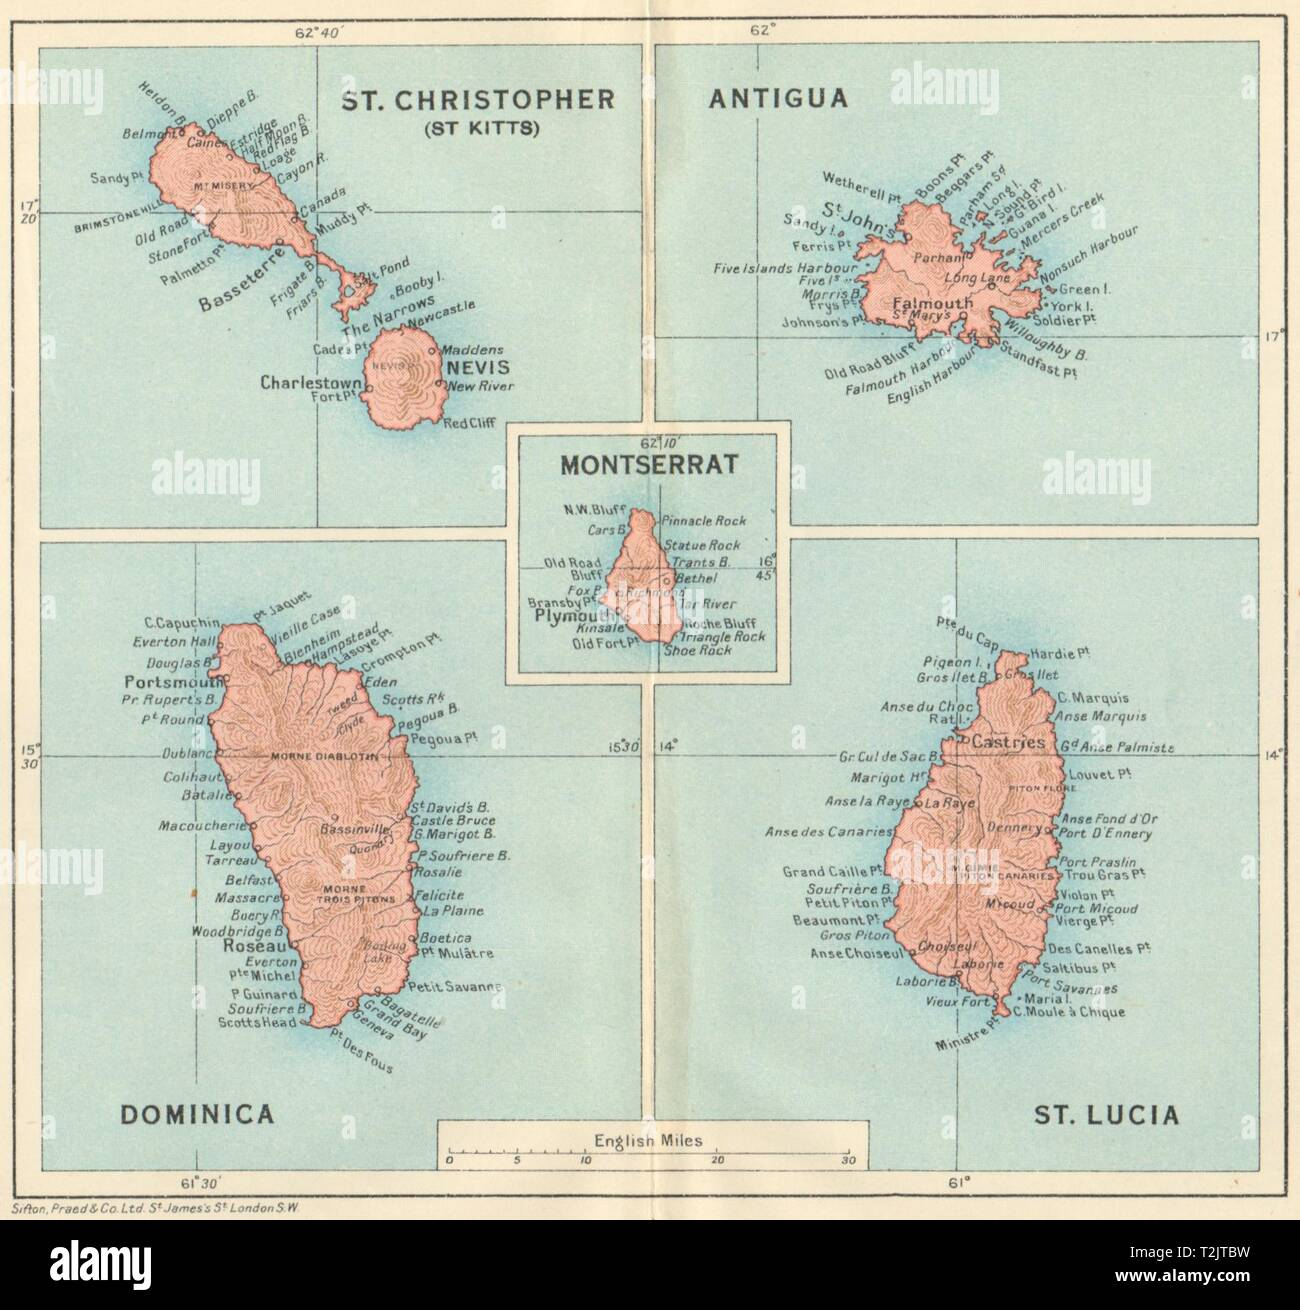 Antigua The Lesser Antilles 1885 old map St John/'s Harbour West Indies